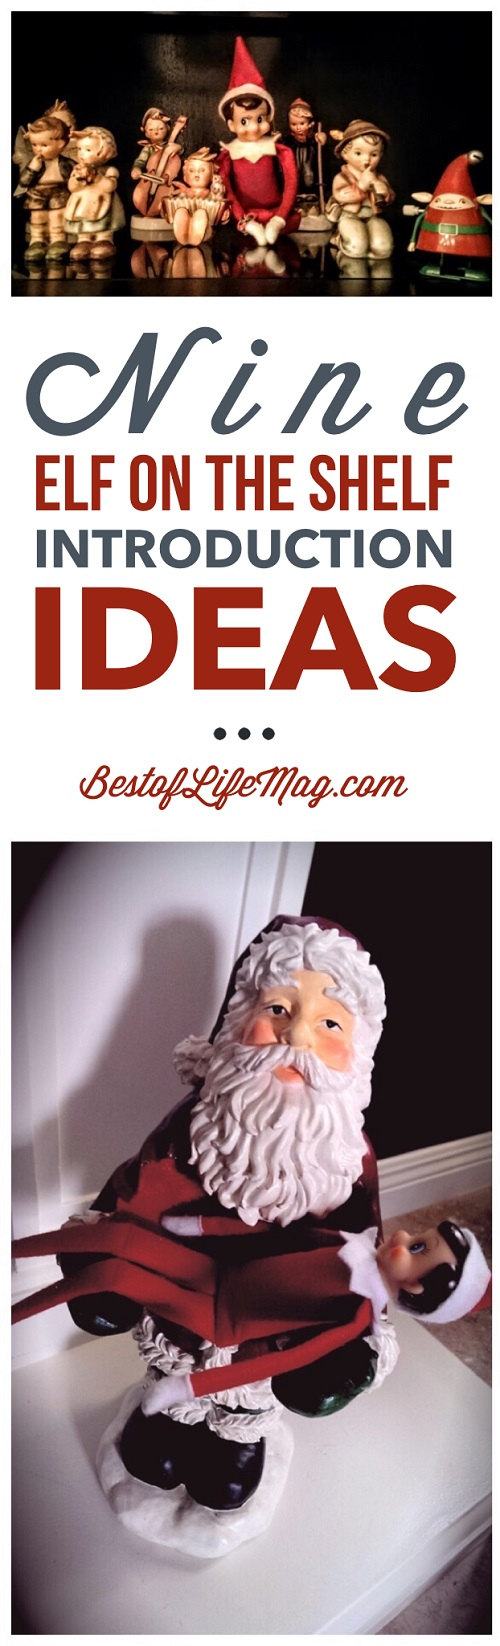 These Elf on the Shelf introduction ideas are creative and fun! Plus they are perfect for all ages!